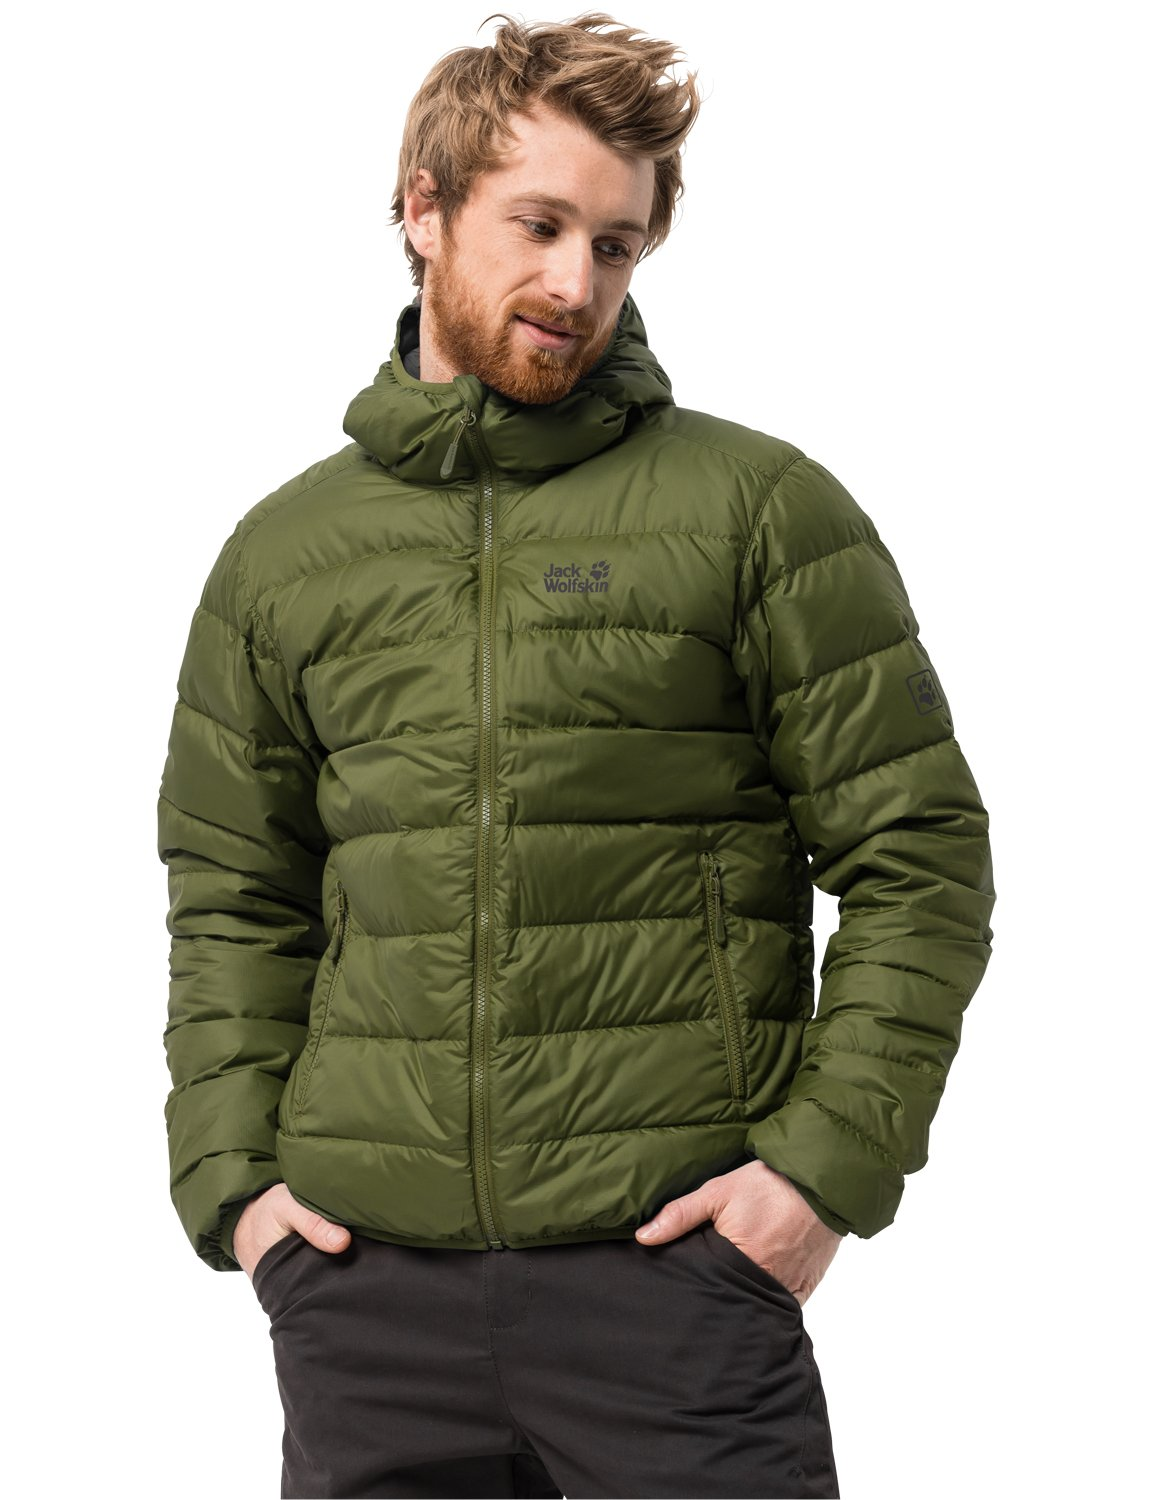 Jack Wolfskin Men's Helium Lightweight Windproof Down Puffer Jacket Jack Wolfskin -- Domestic